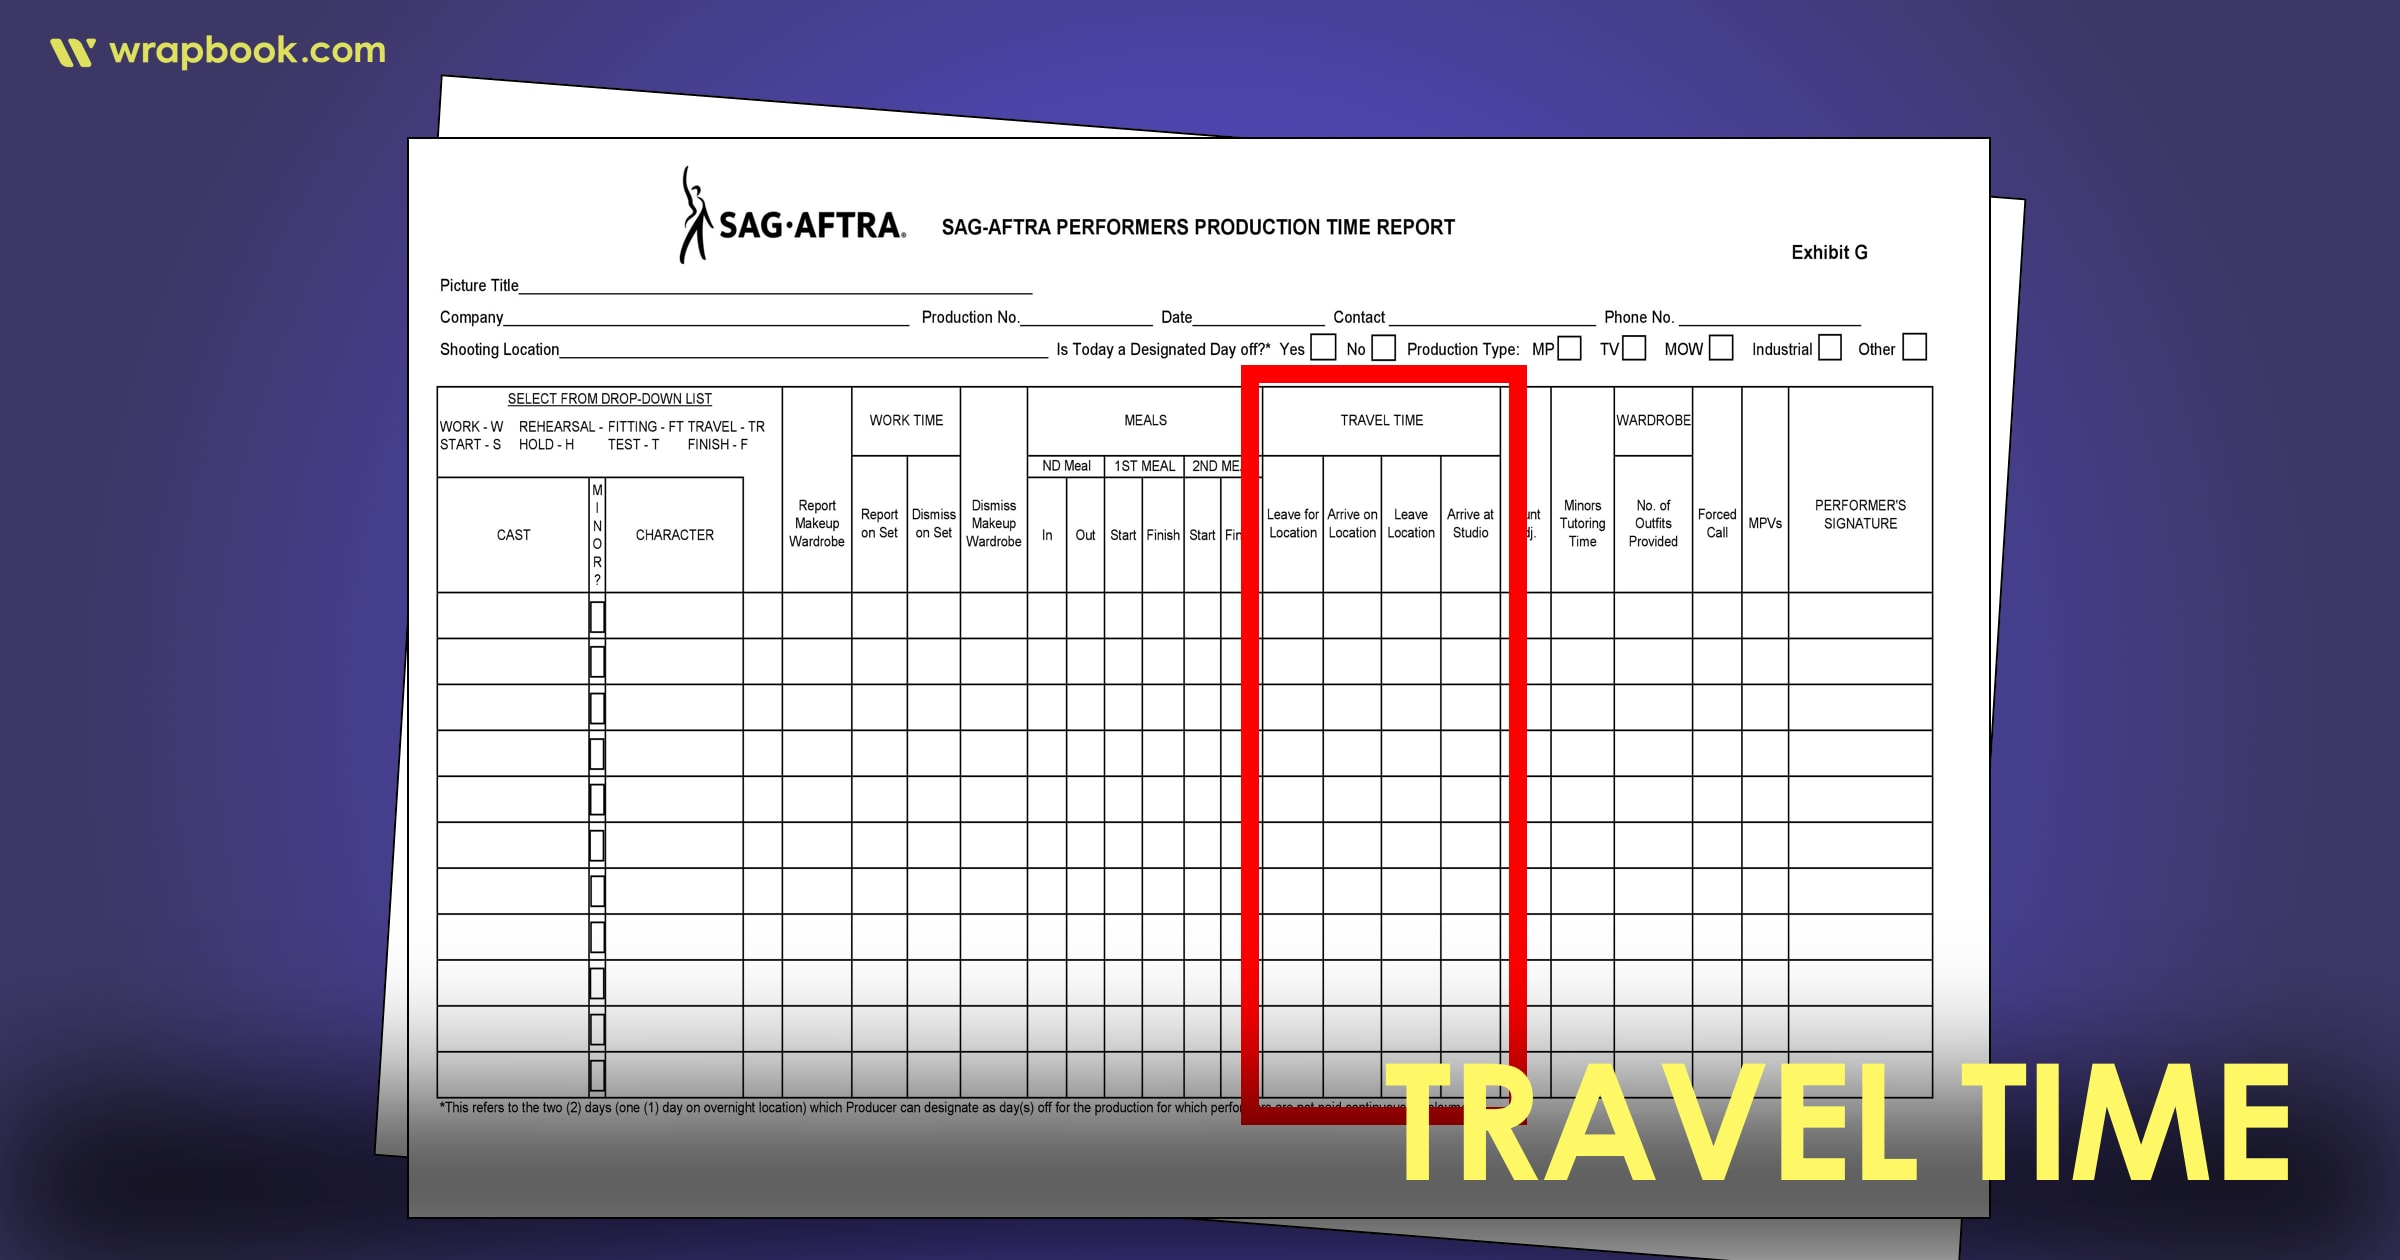 Travel Time - How to Fill Out The SAG Exhibit G Form